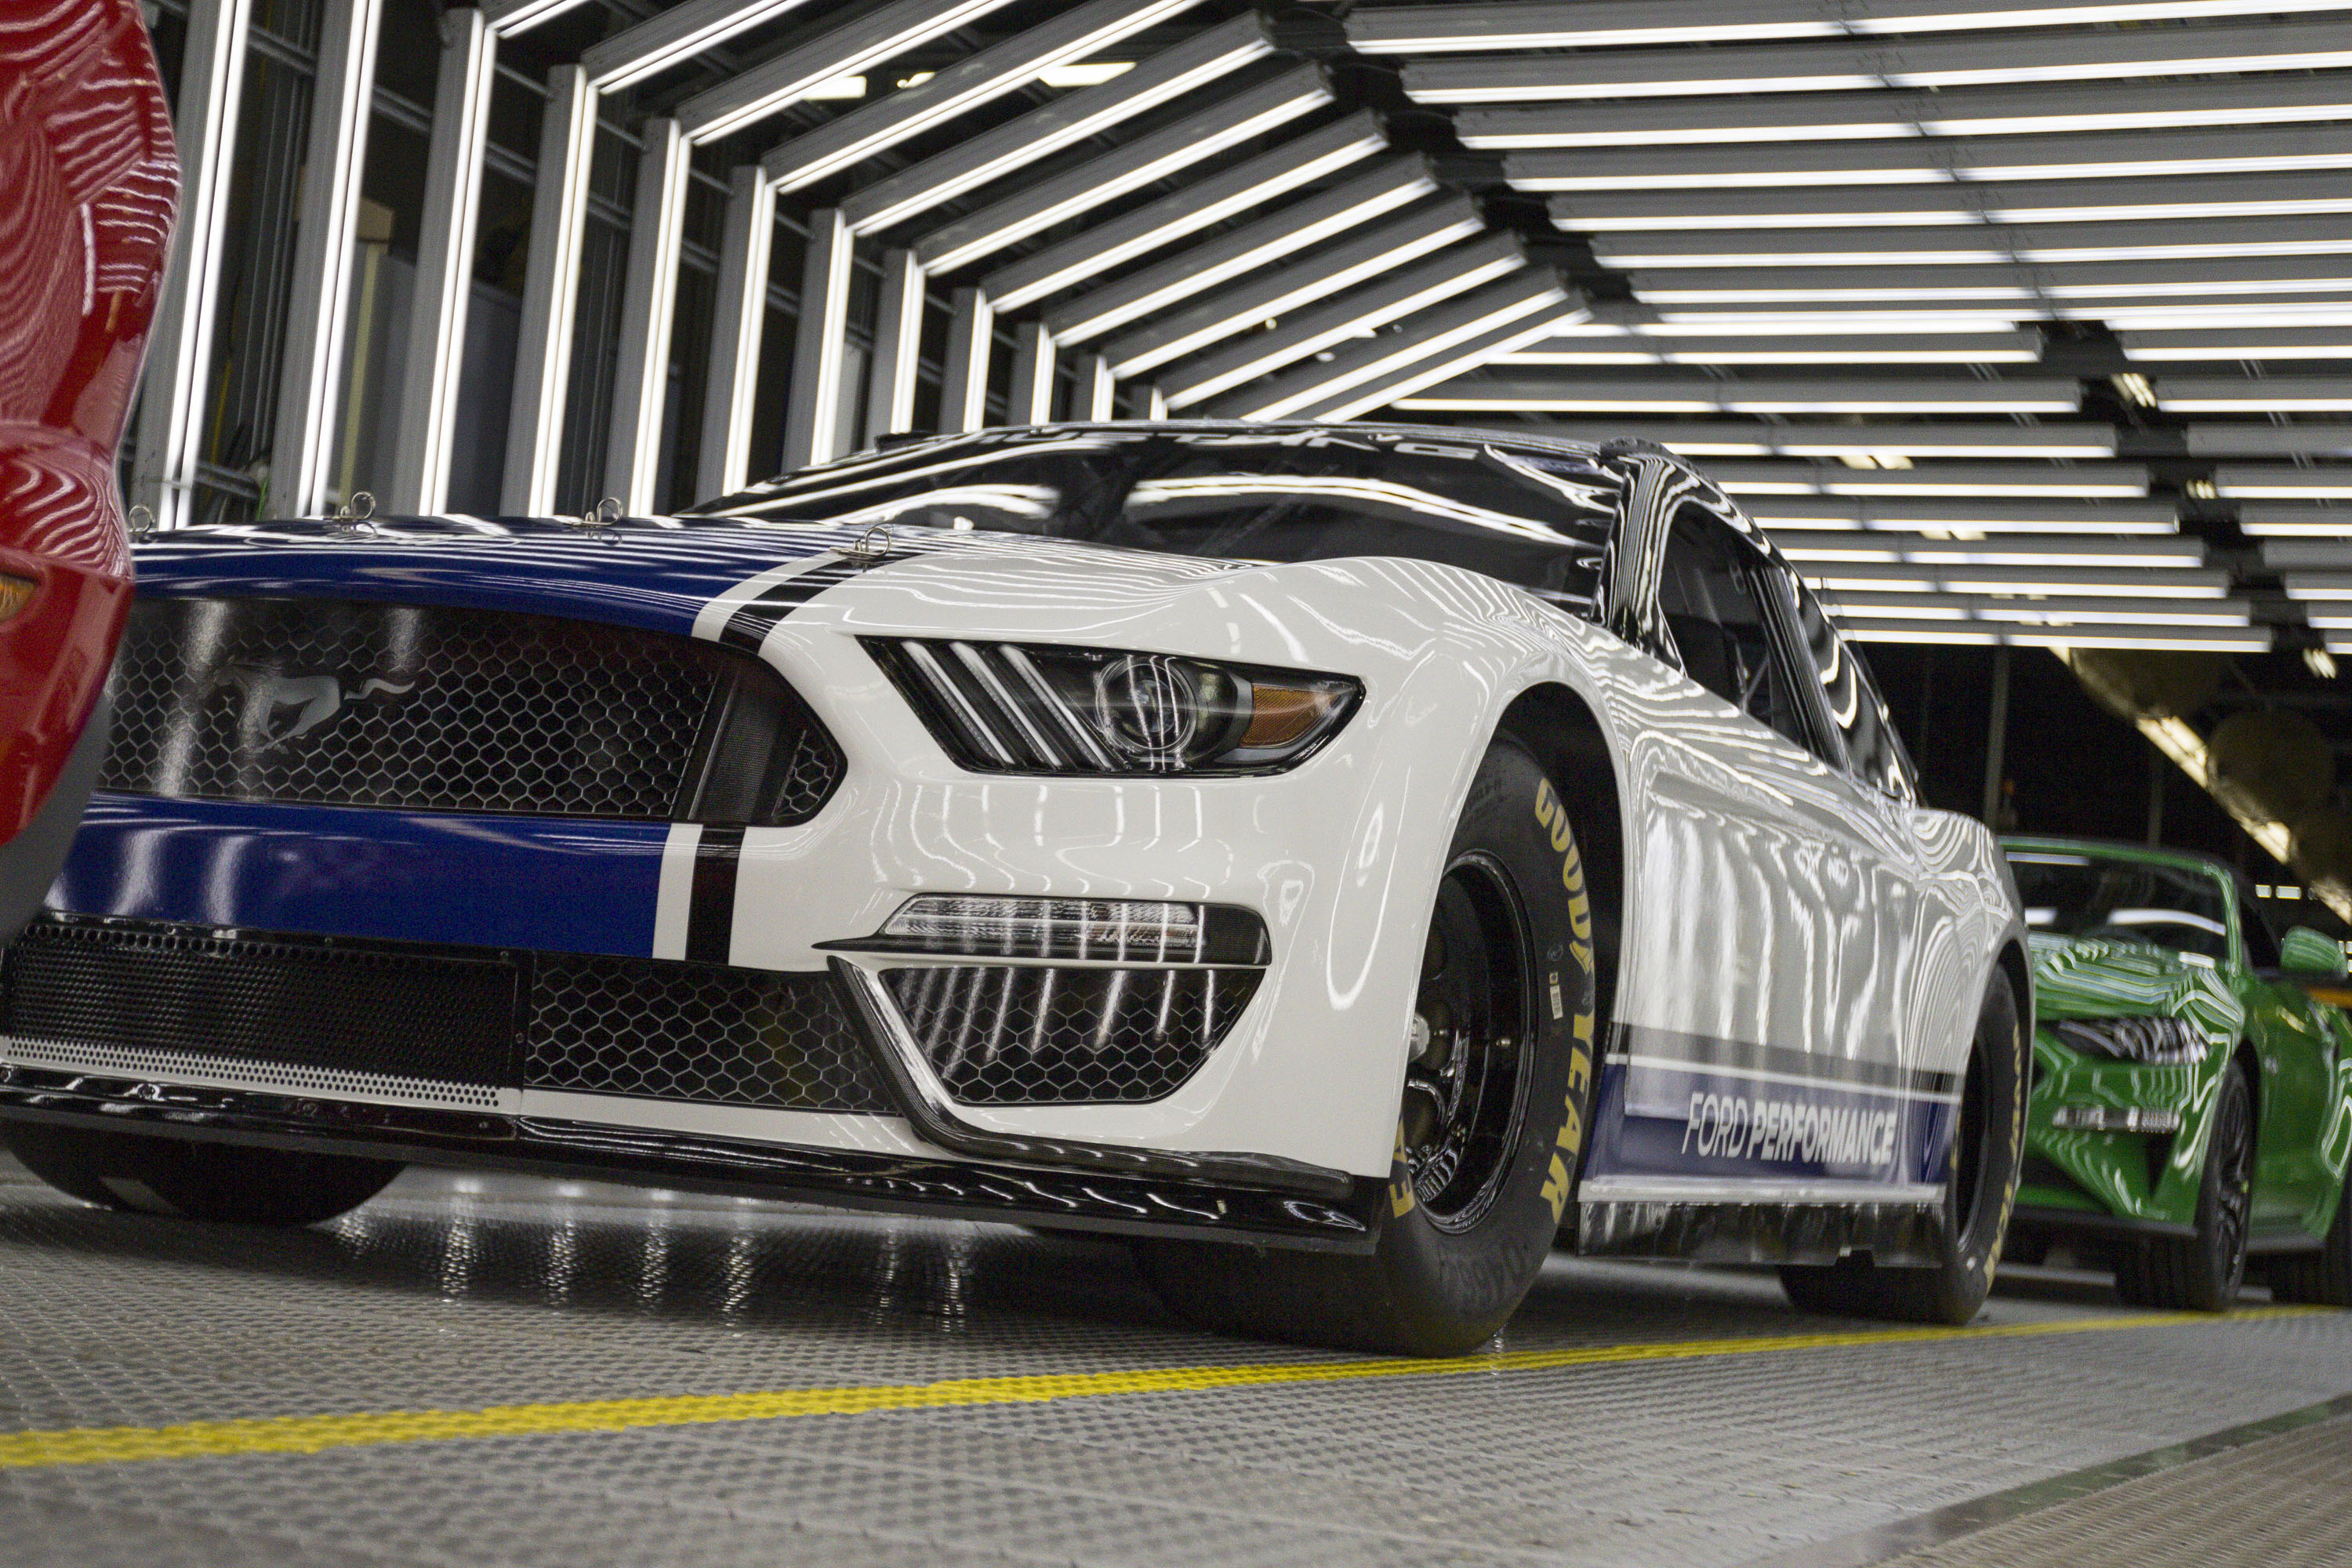 PHOTOS Ford Mustang Cup Series car – The Racing Experts